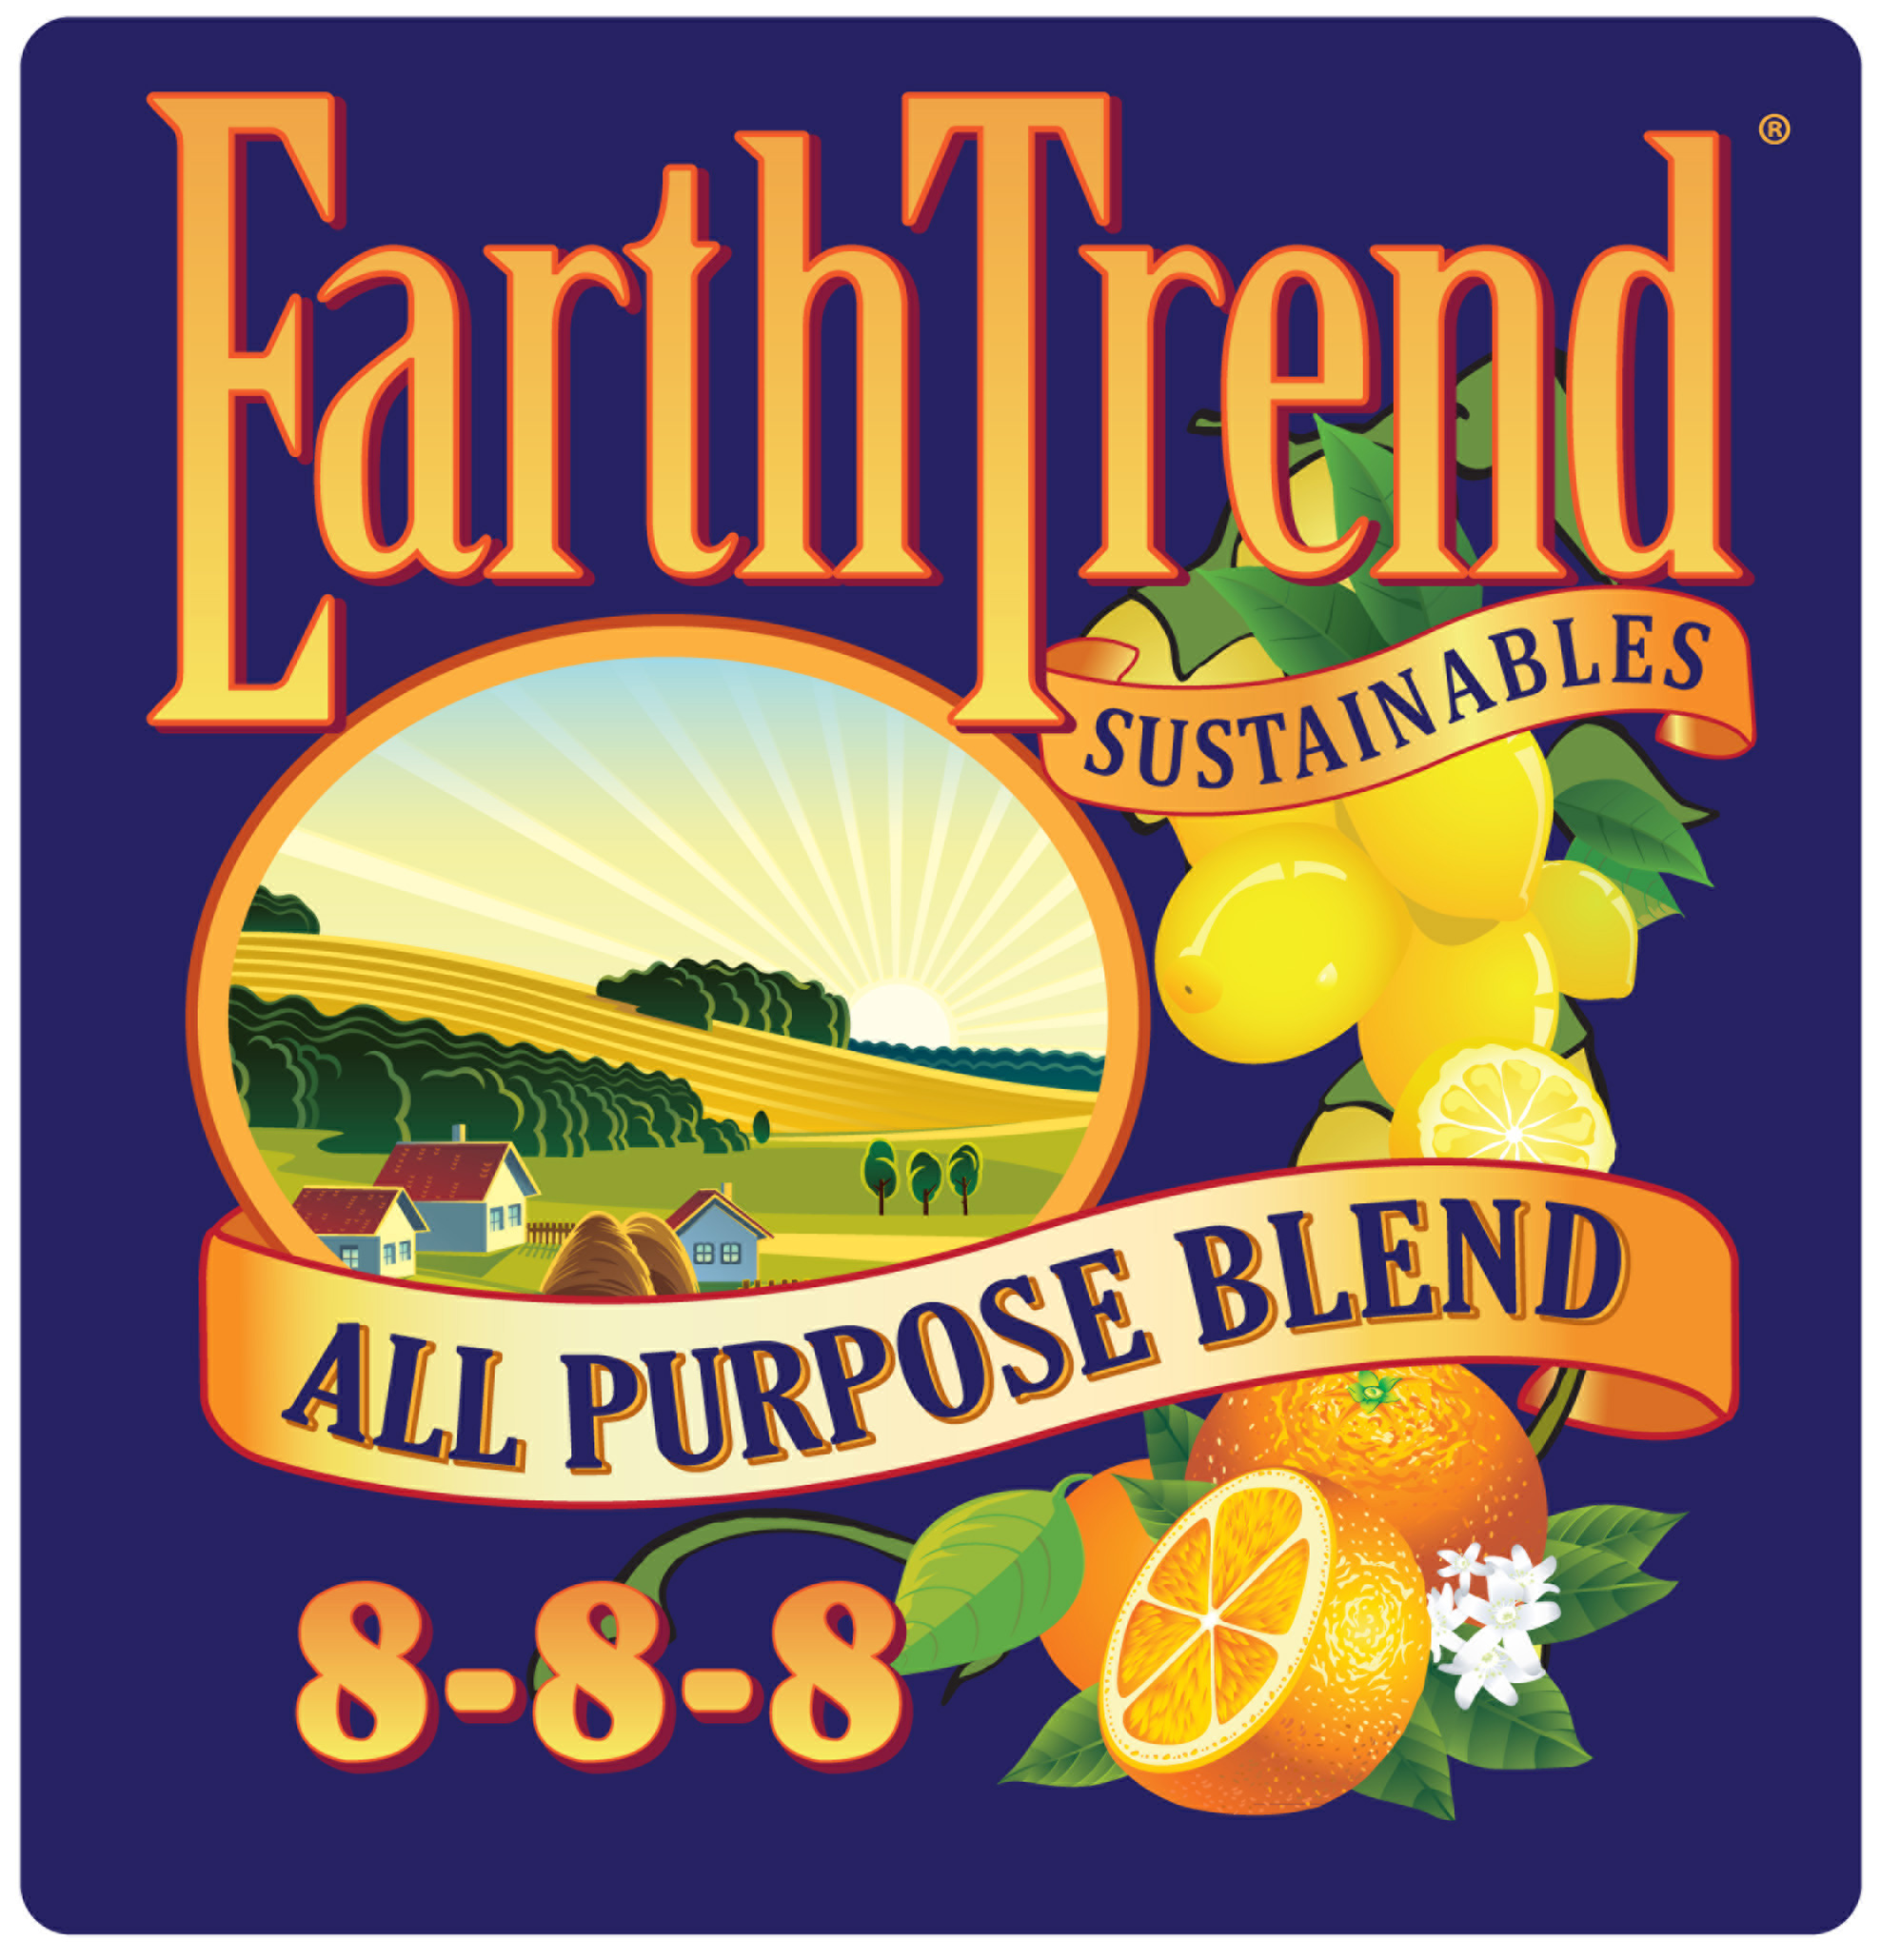 earthtrend all purpose blend